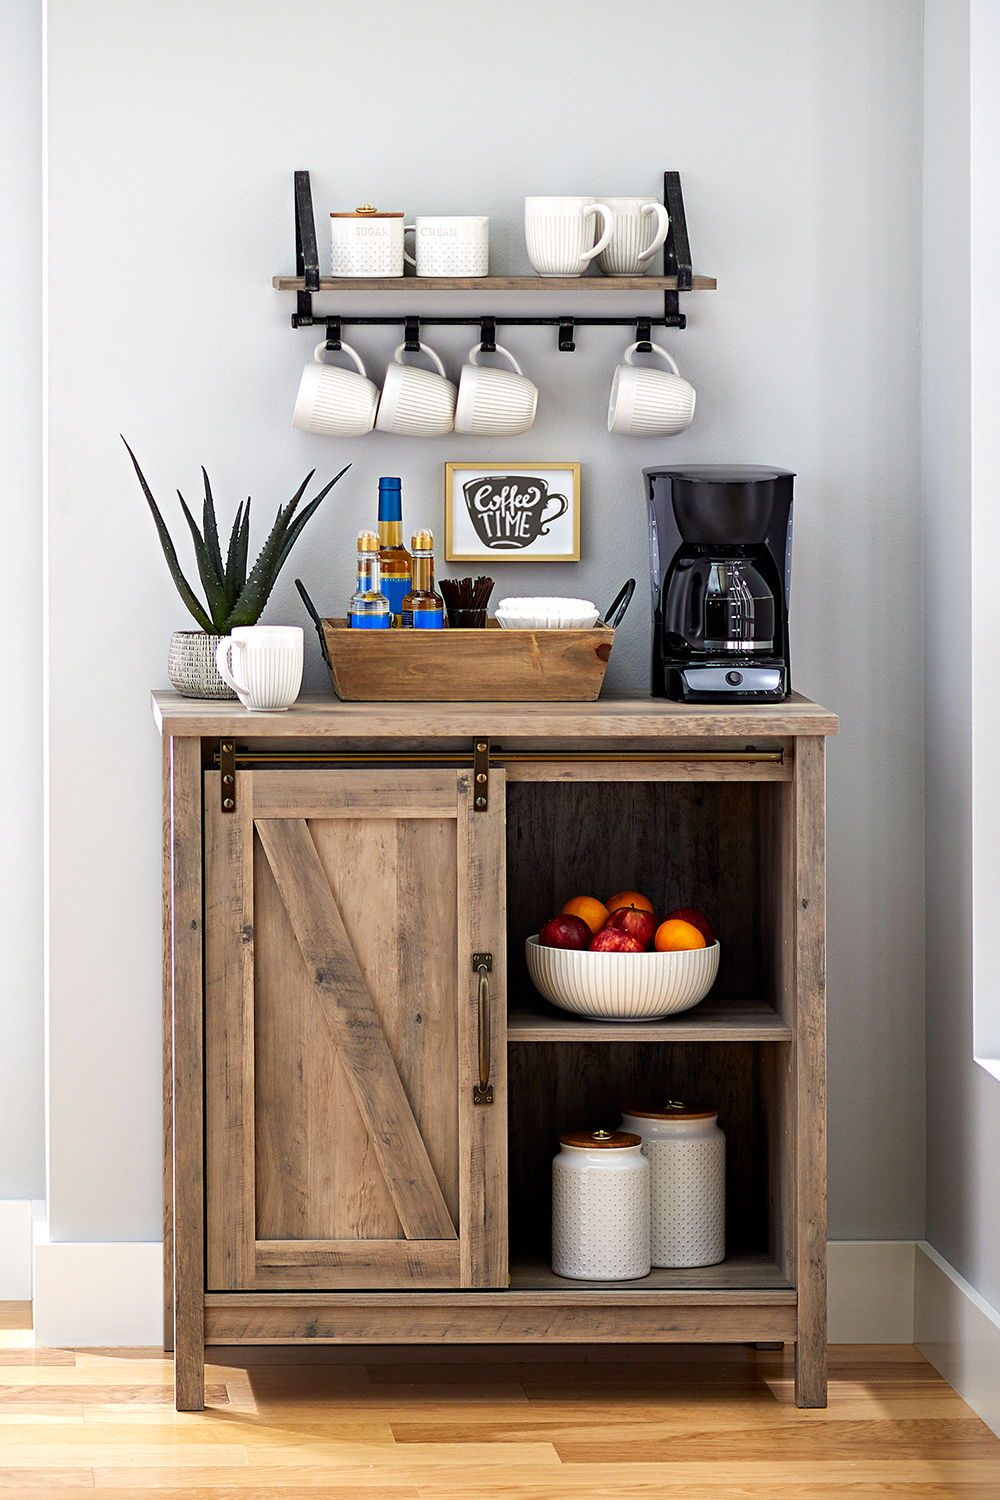 Better Homes Gardens Modern Farmhouse Accent Storage Cabinet Rustic Gray Finish Walmart Com Coffee Bar Home Accent Storage Cabinet Bars For Home